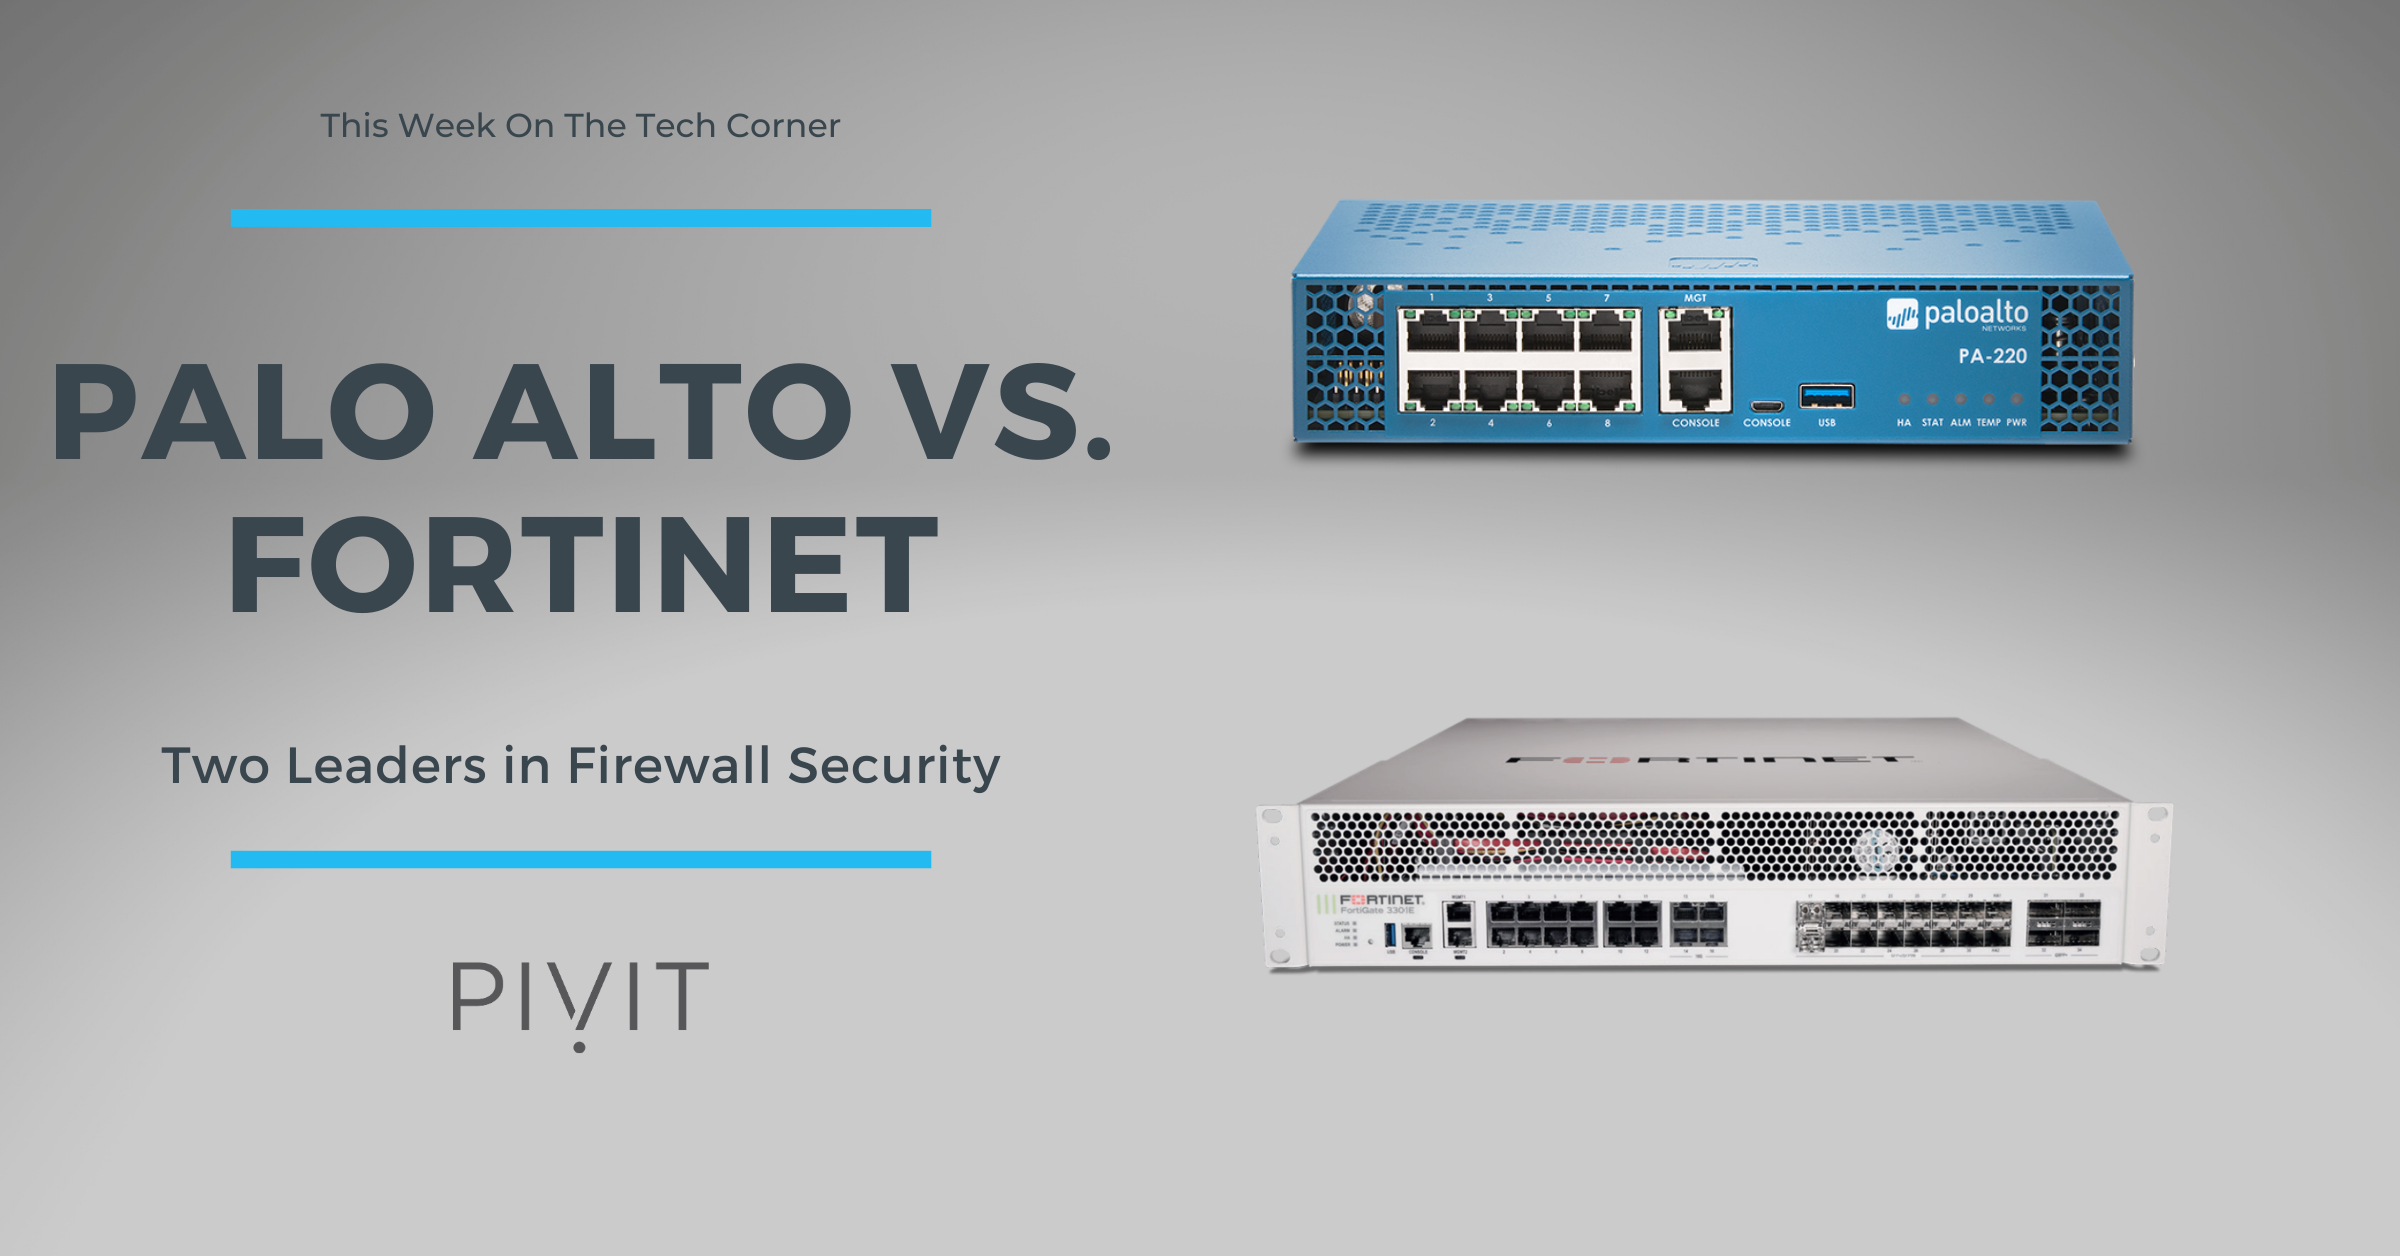 Palo Alto vs. Fortinet in a Next-Generation Firewall Comparison